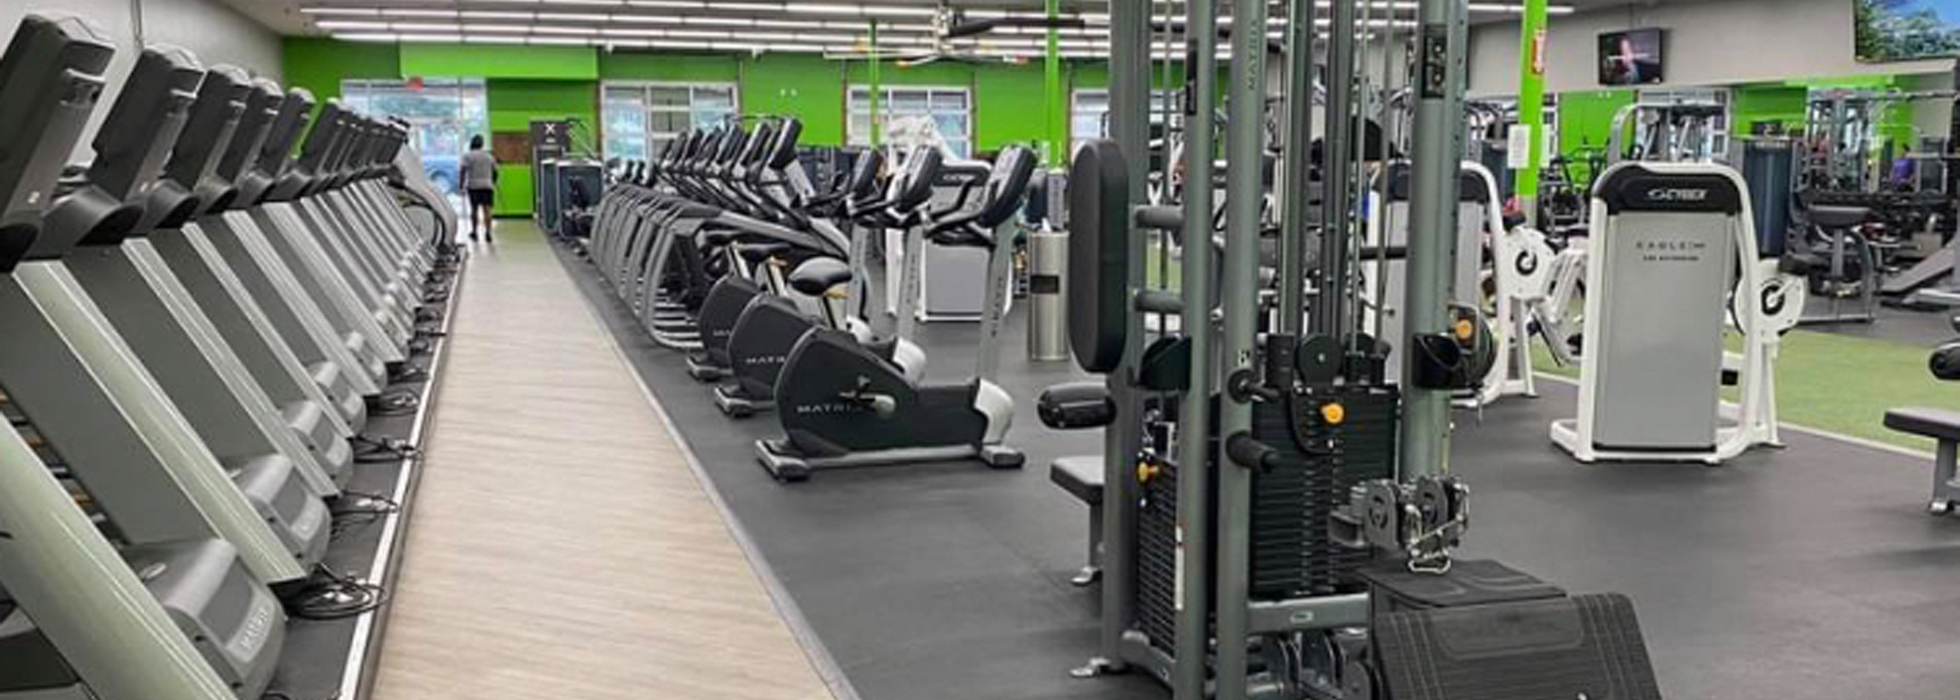 A Gym near Brooksville FL That Can Help With Weight loss & Dieting